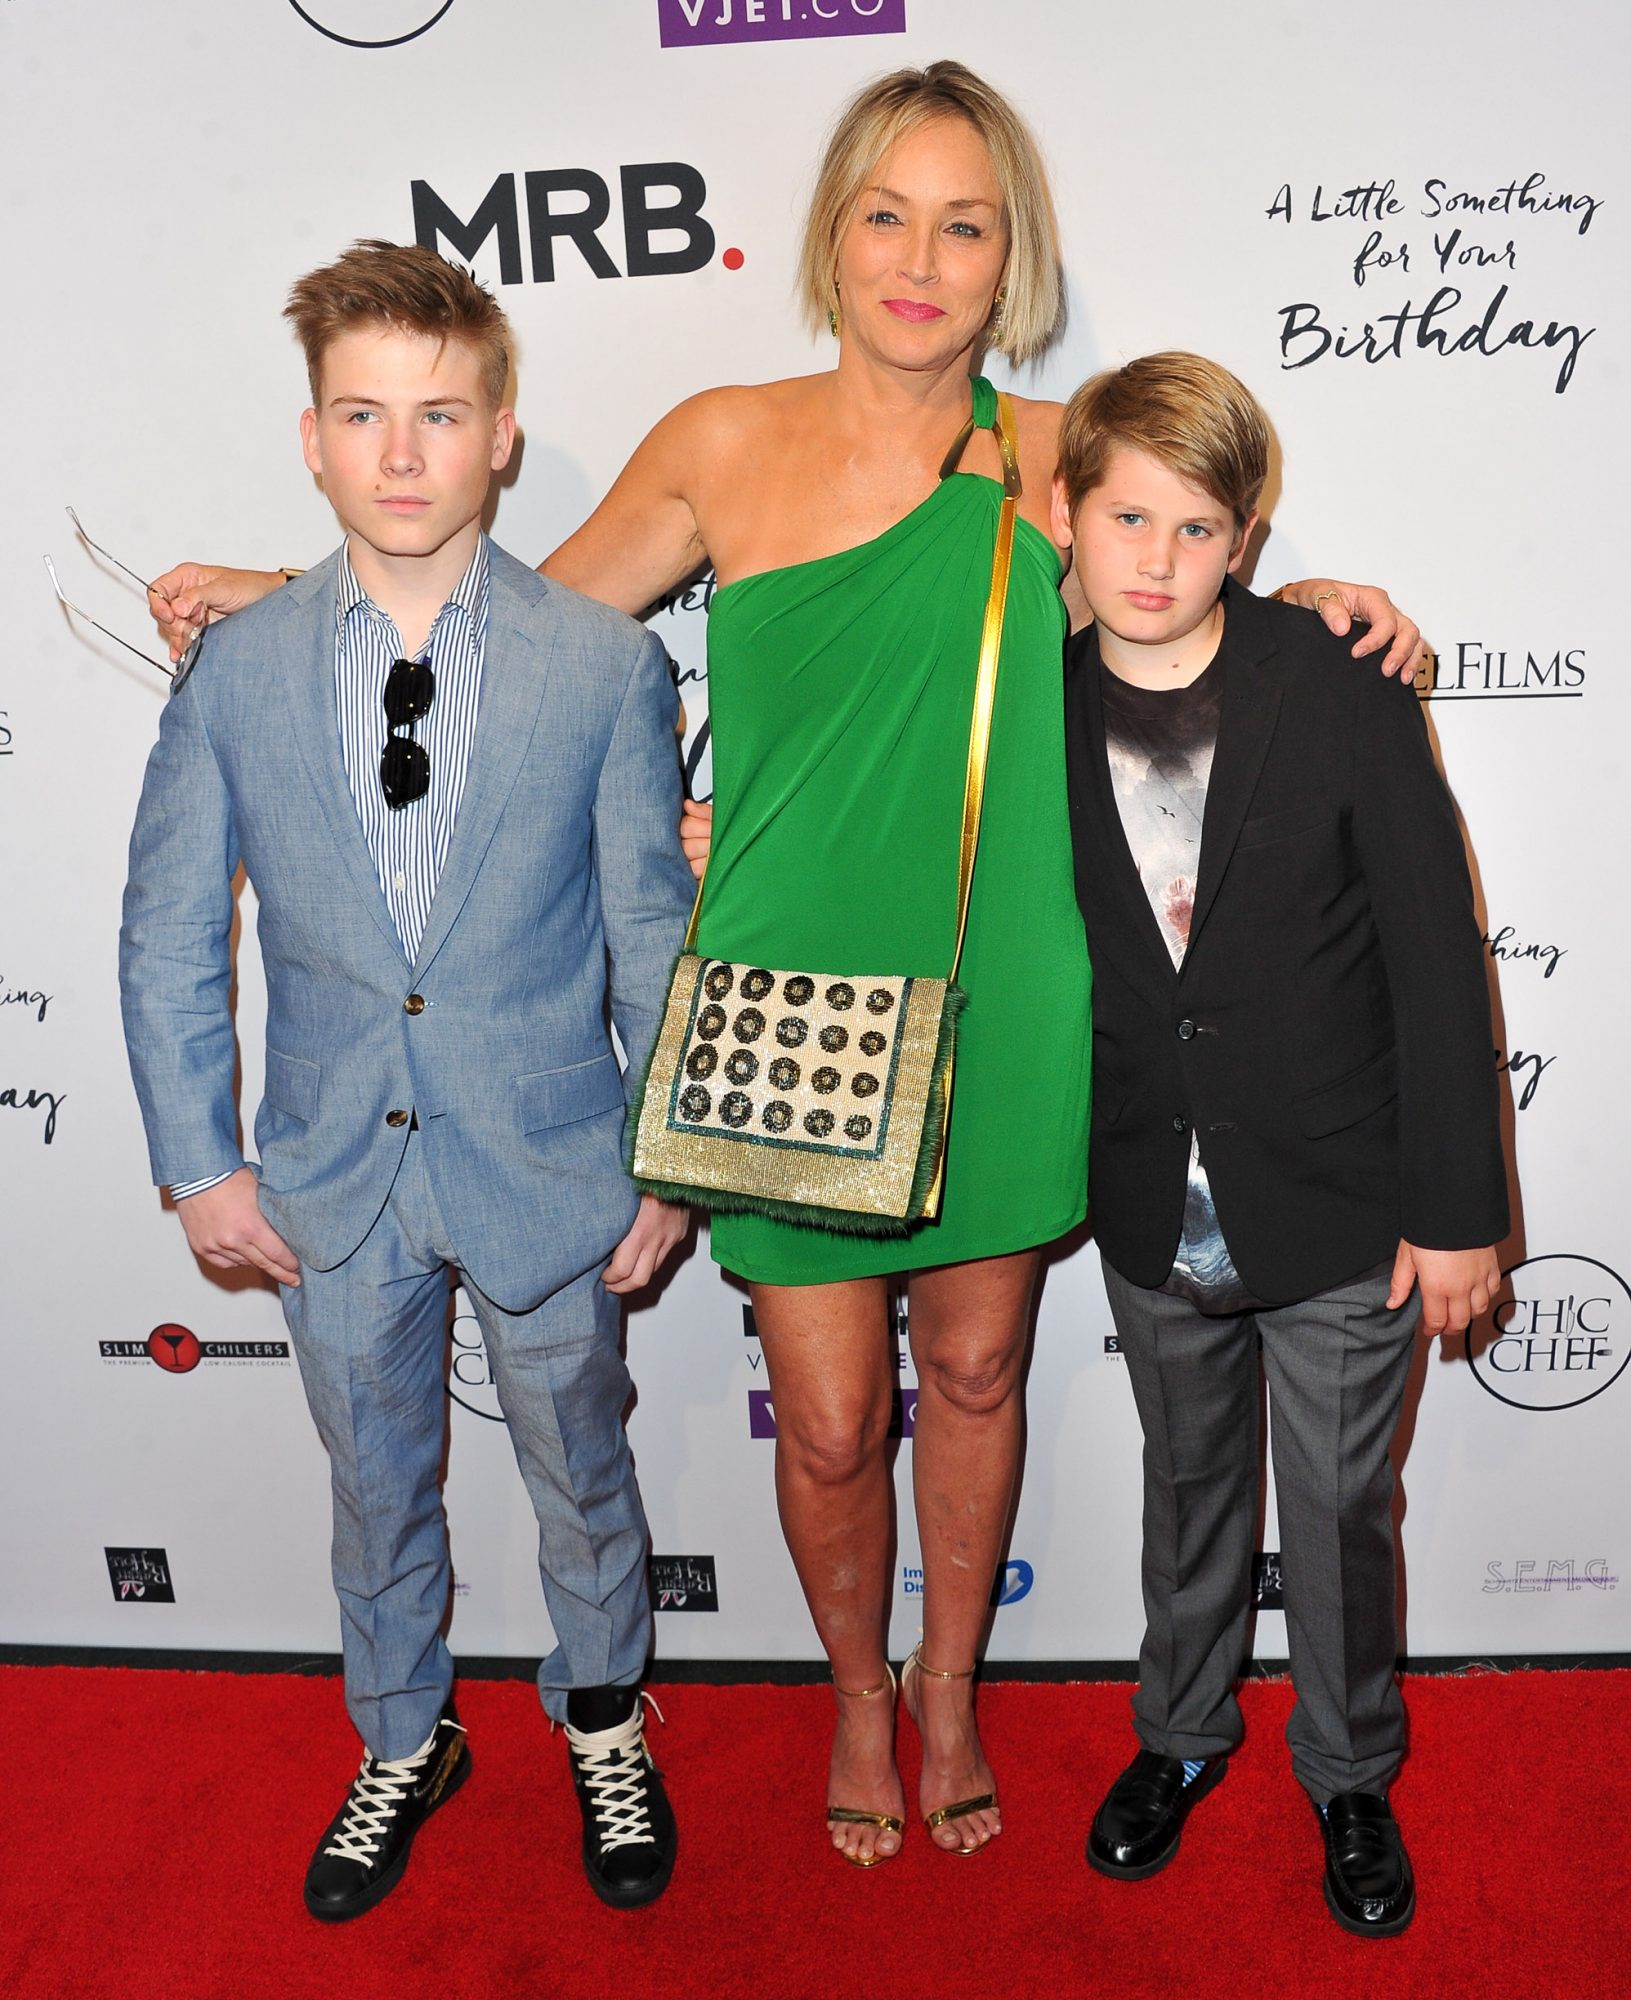 Sharon Stone and Sons - Embed